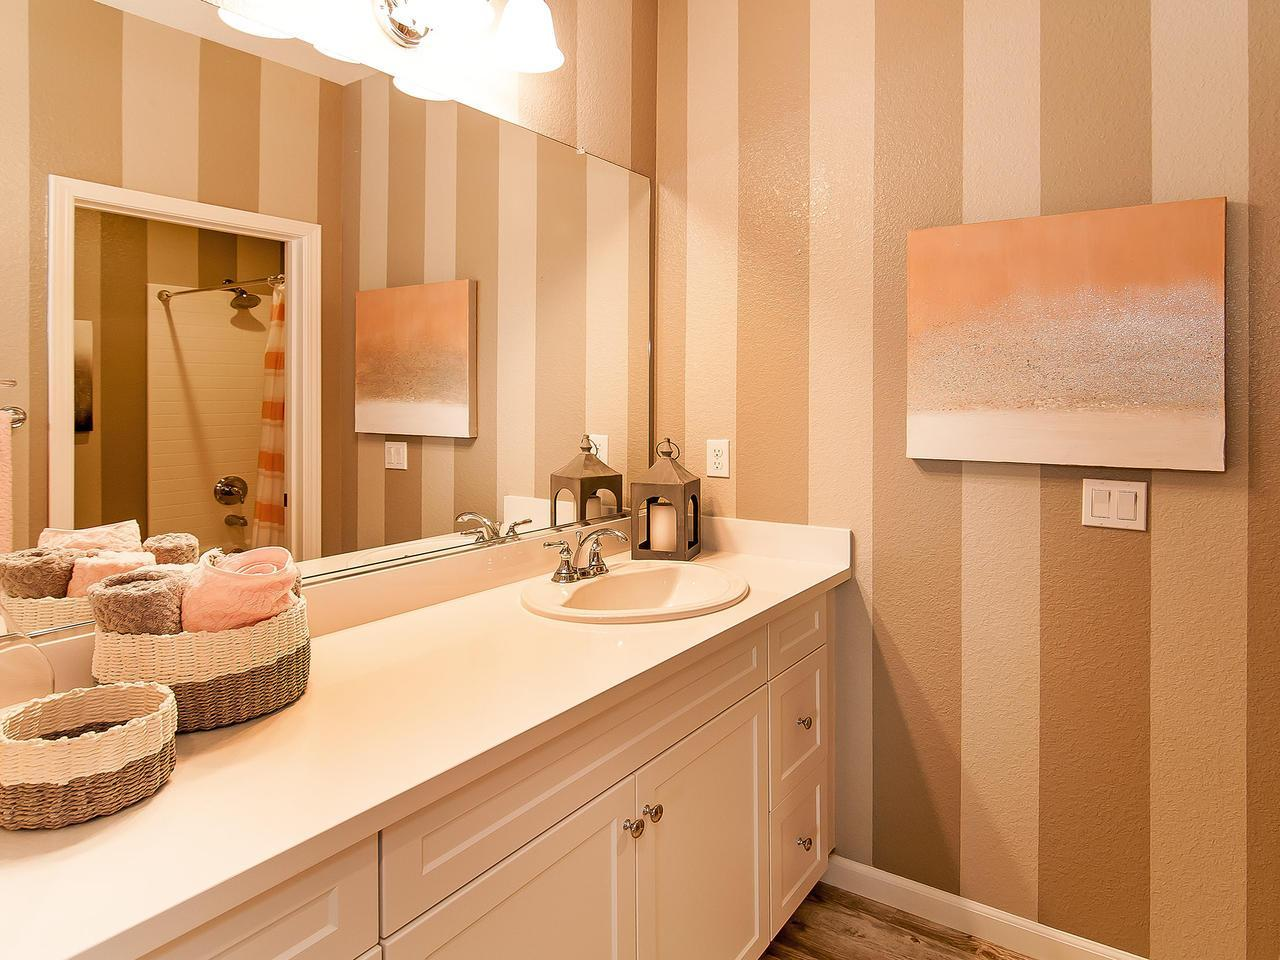 Bathroom featured in the Residence 1789 By Legacy Homes in Merced, CA